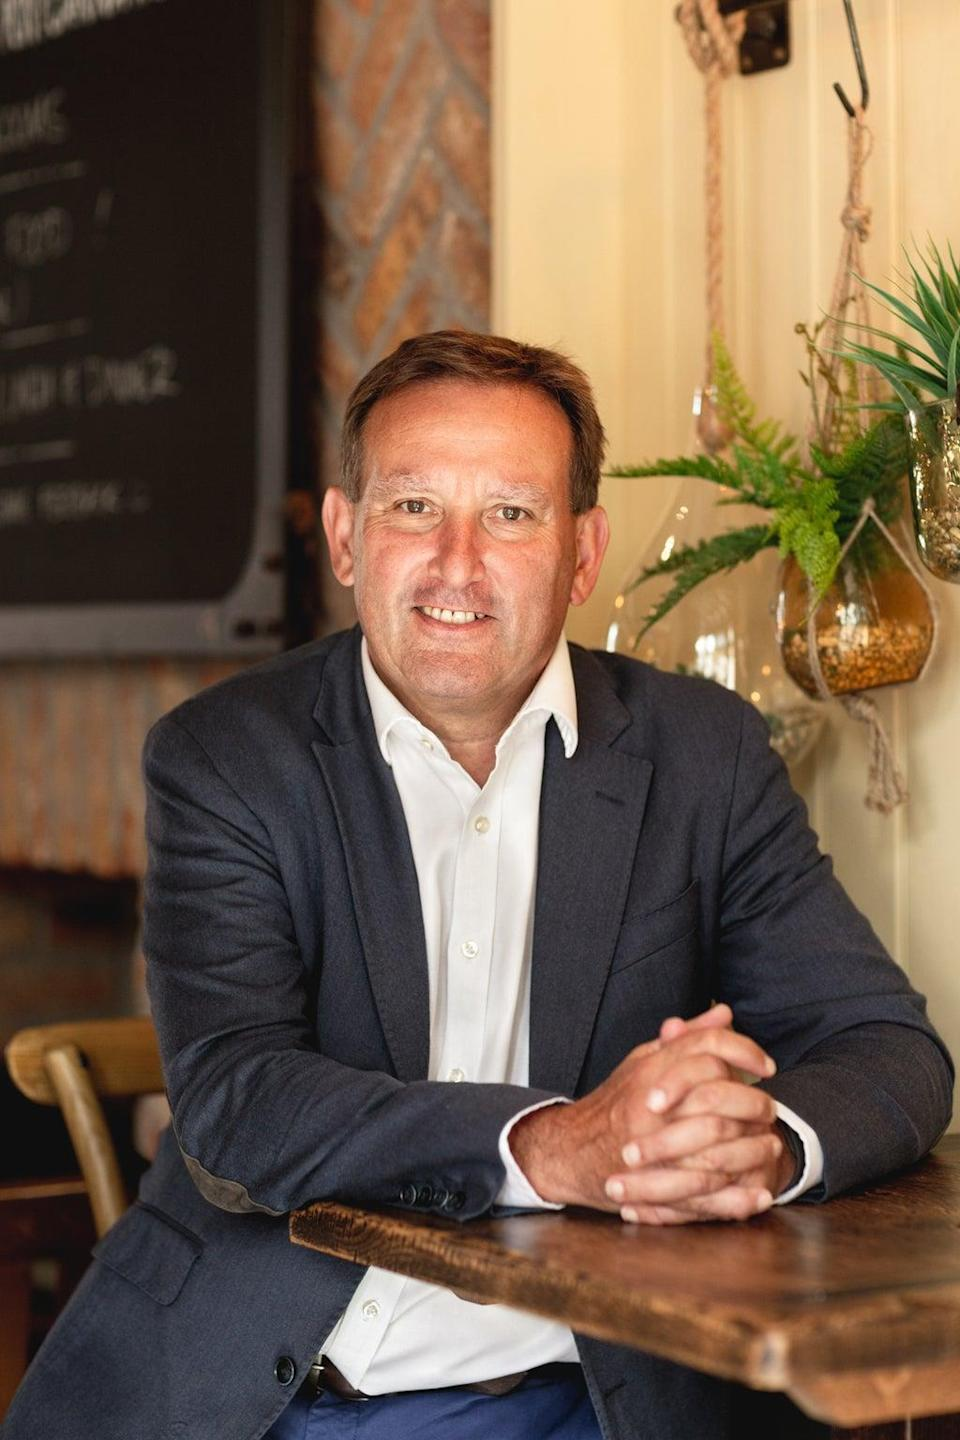 Clive Watson, executive chair of City Pub Group